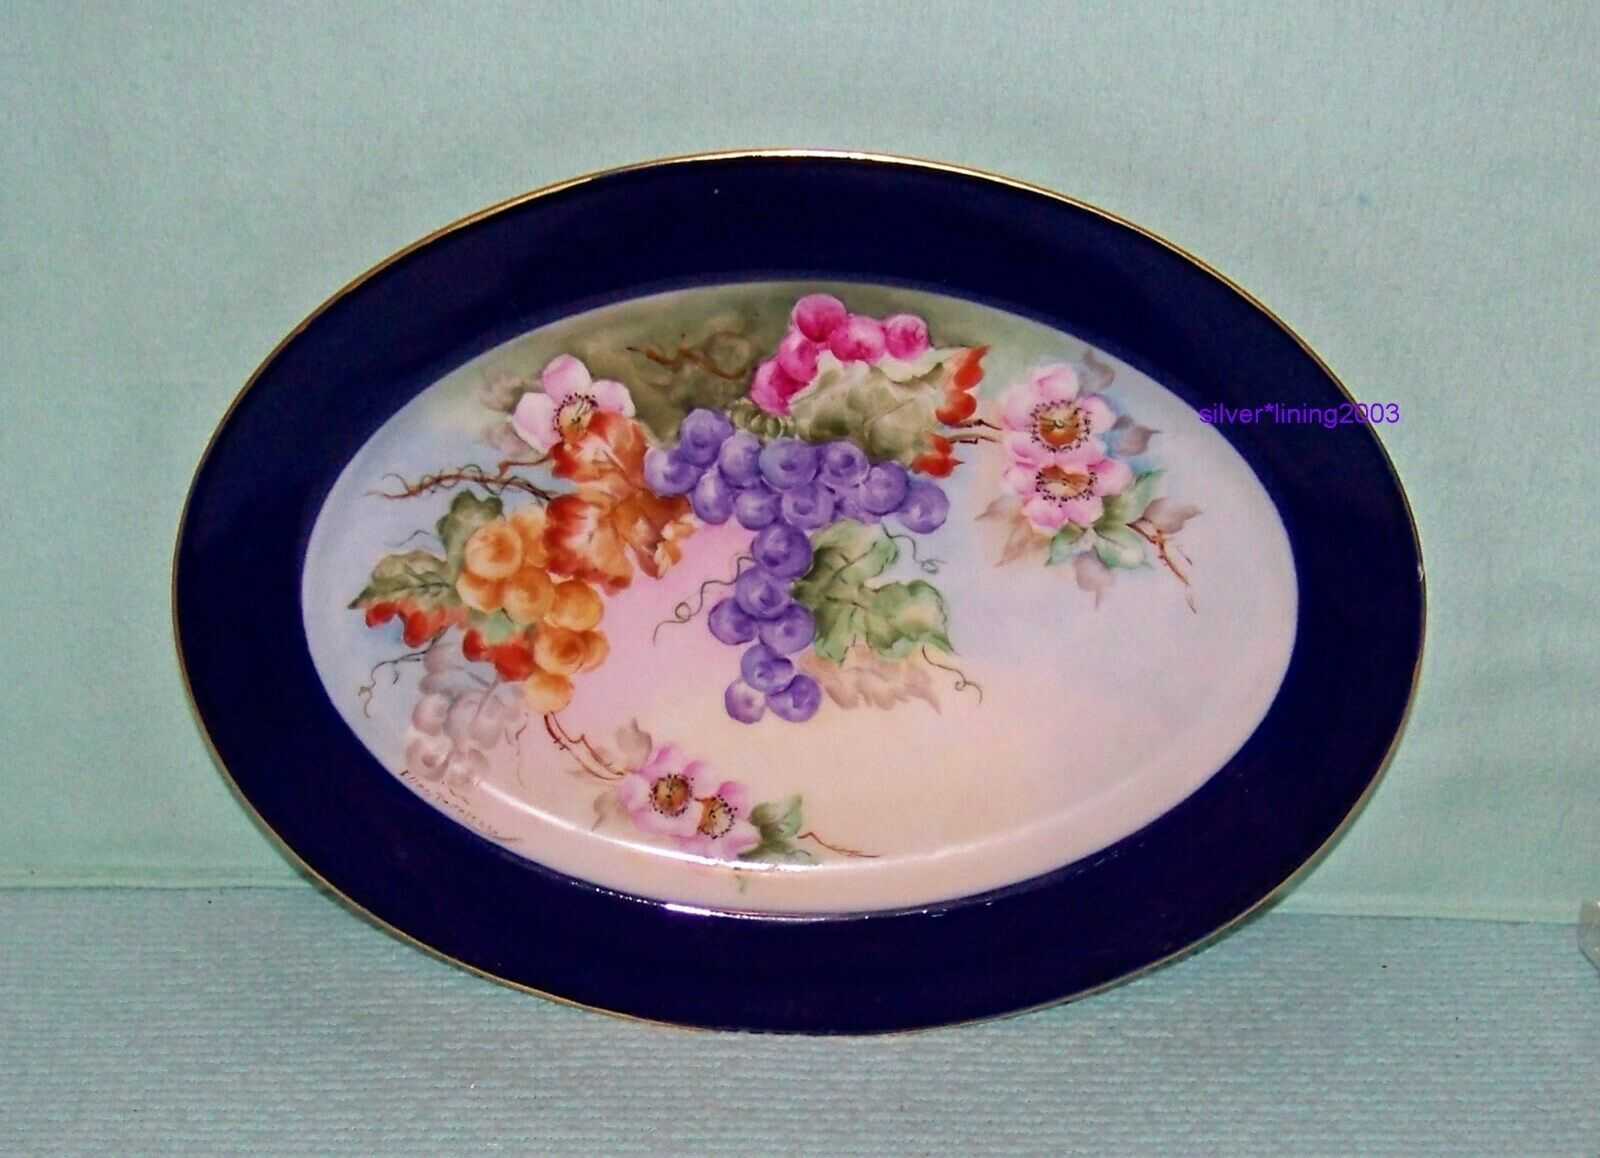 HAND PAINTED ANTIQUE HAVILAND PORCELAIN PLATTER ROSES GRAPE CLUSTERS FRANCE  - $25.00